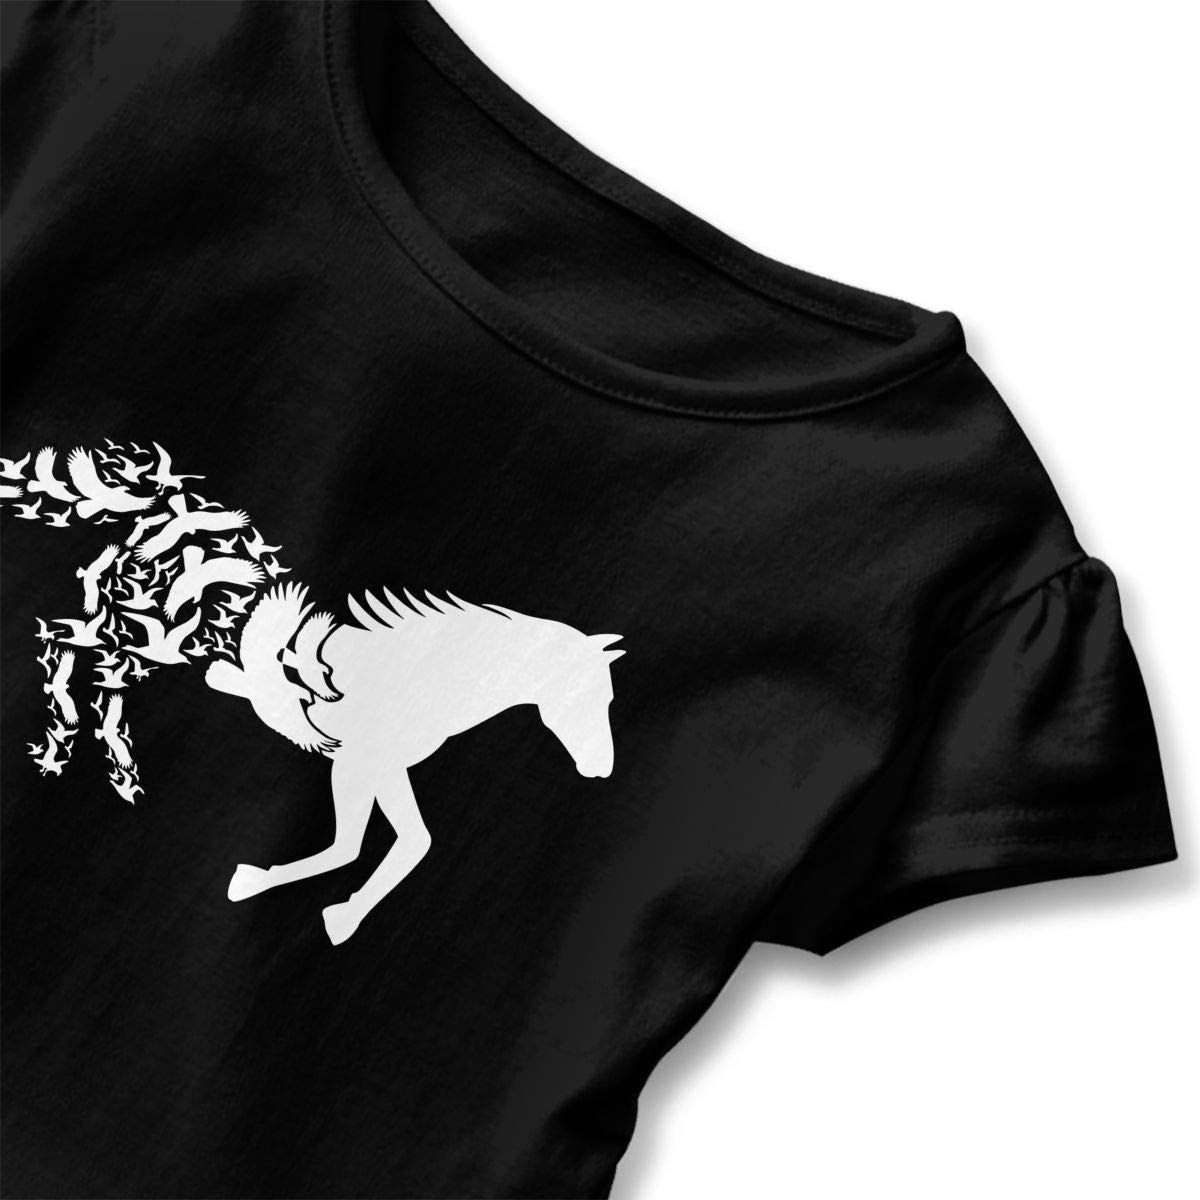 Black Horse Silhouette with Flying Birds Kids Children Short-Sleeved Shirt Clothes